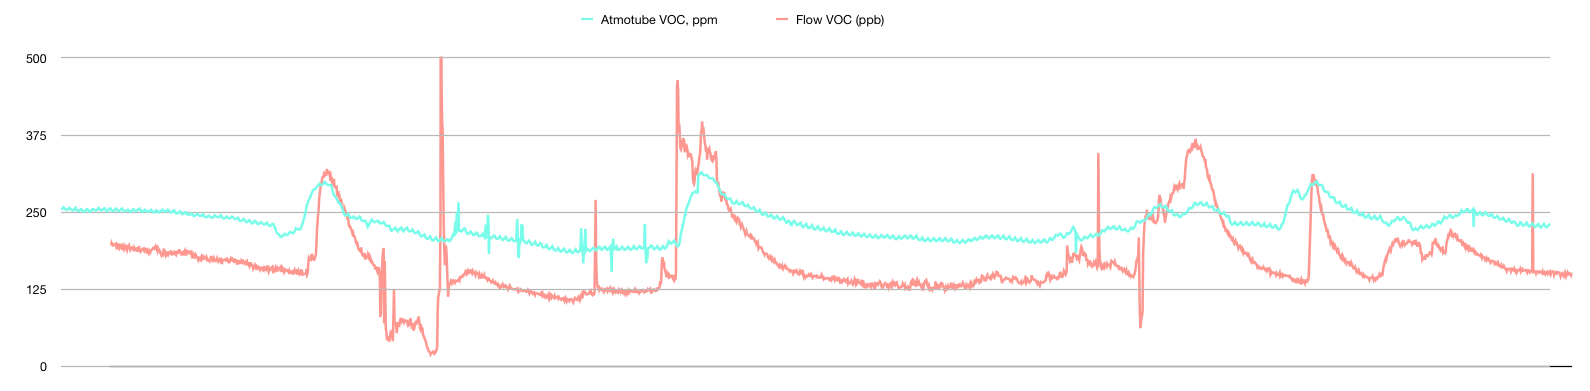 Atmotube vs Flow | VOC sensor